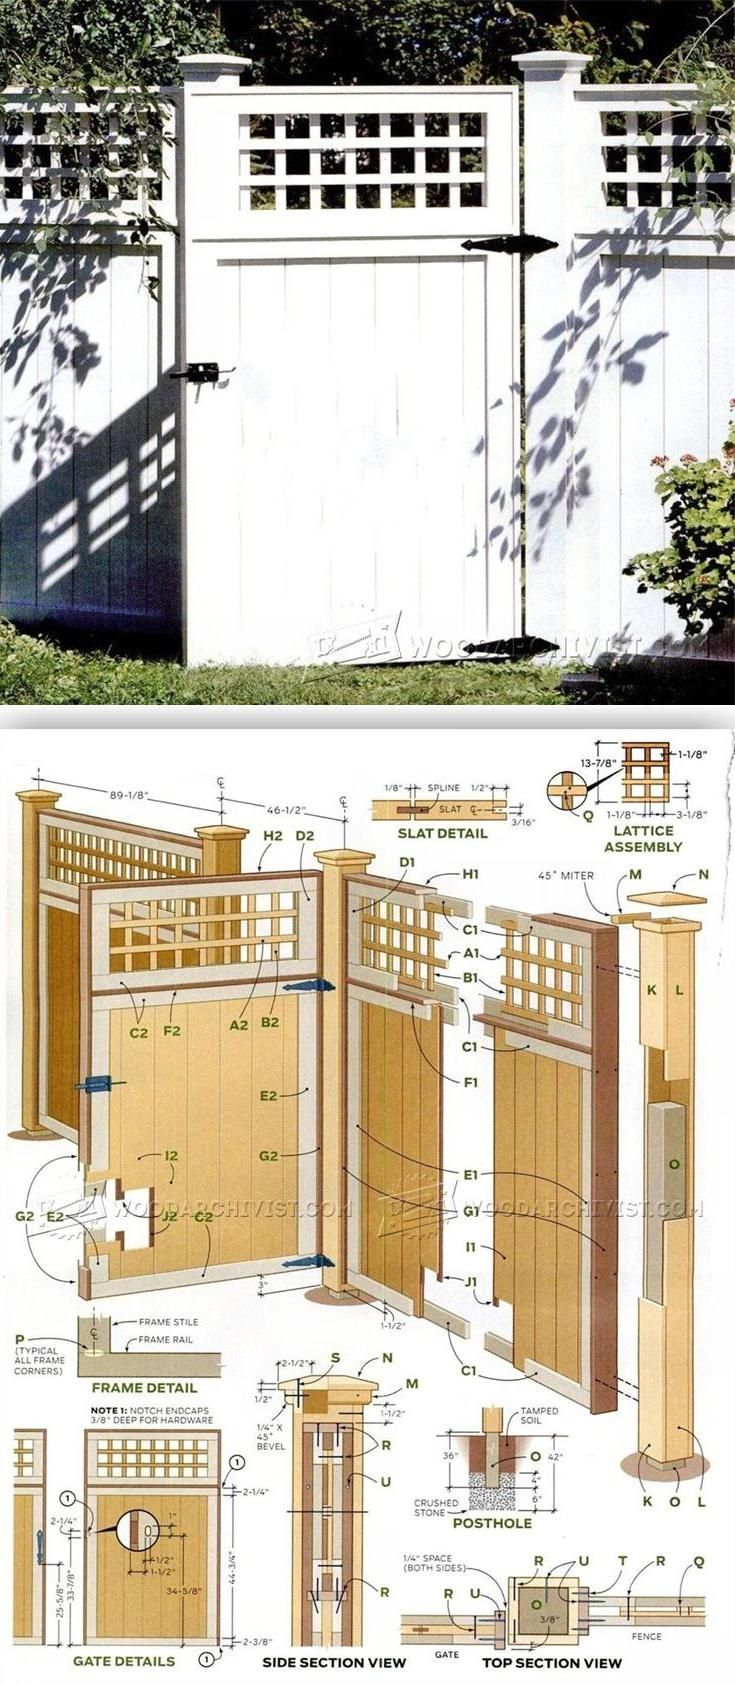 Building Lattice Top Fence - Outdoor Plans and Projects | WoodArchivist.com